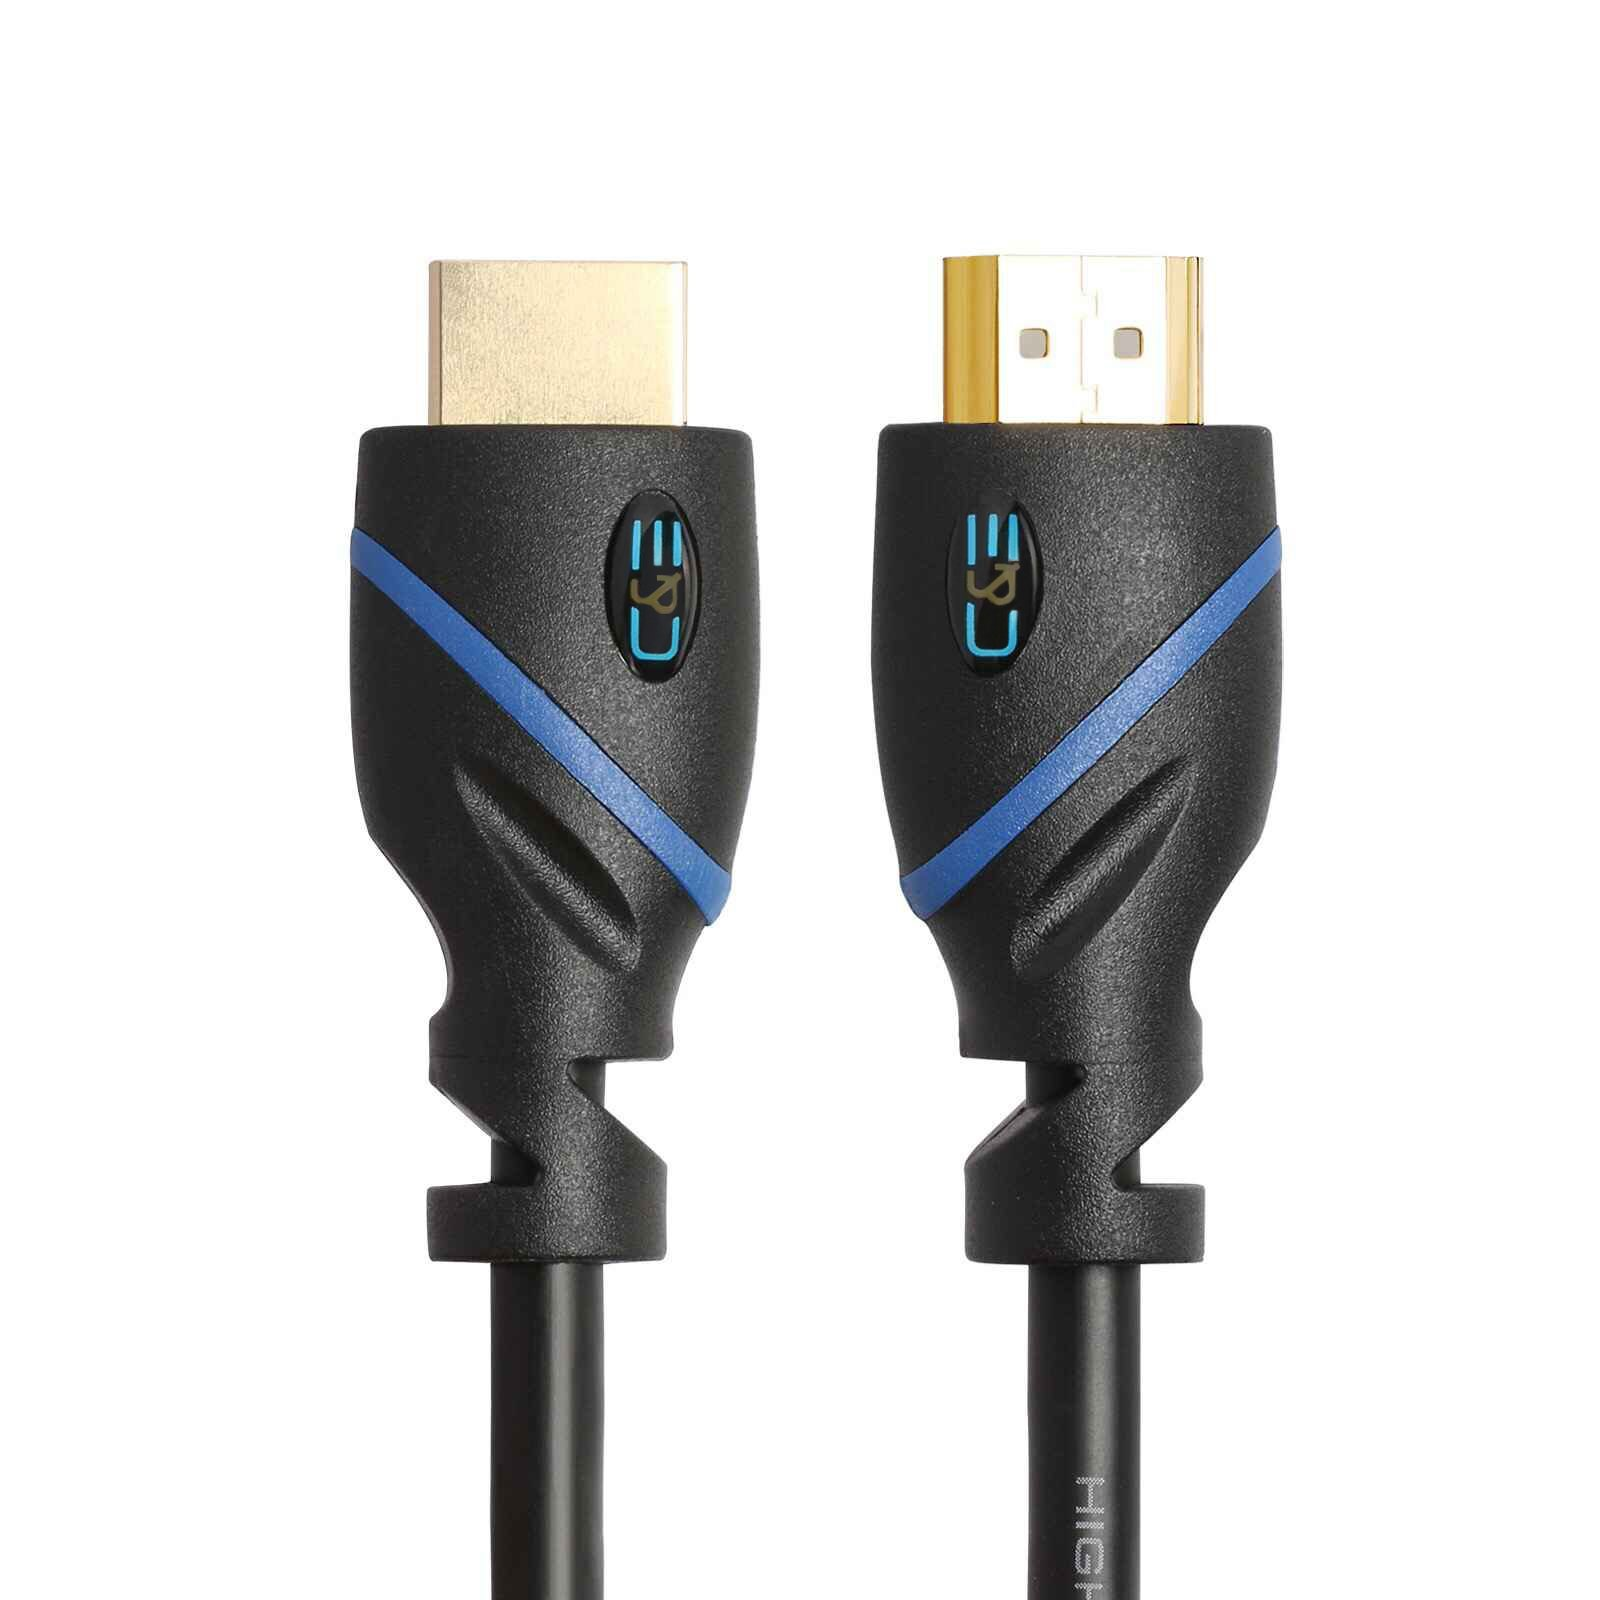 C&E High Speed HDMI Cable, w/ Built-in Signal Booster Supports 3D & Audio Return Channel Full HD[Latest Version] 100 Feet, CNE453182